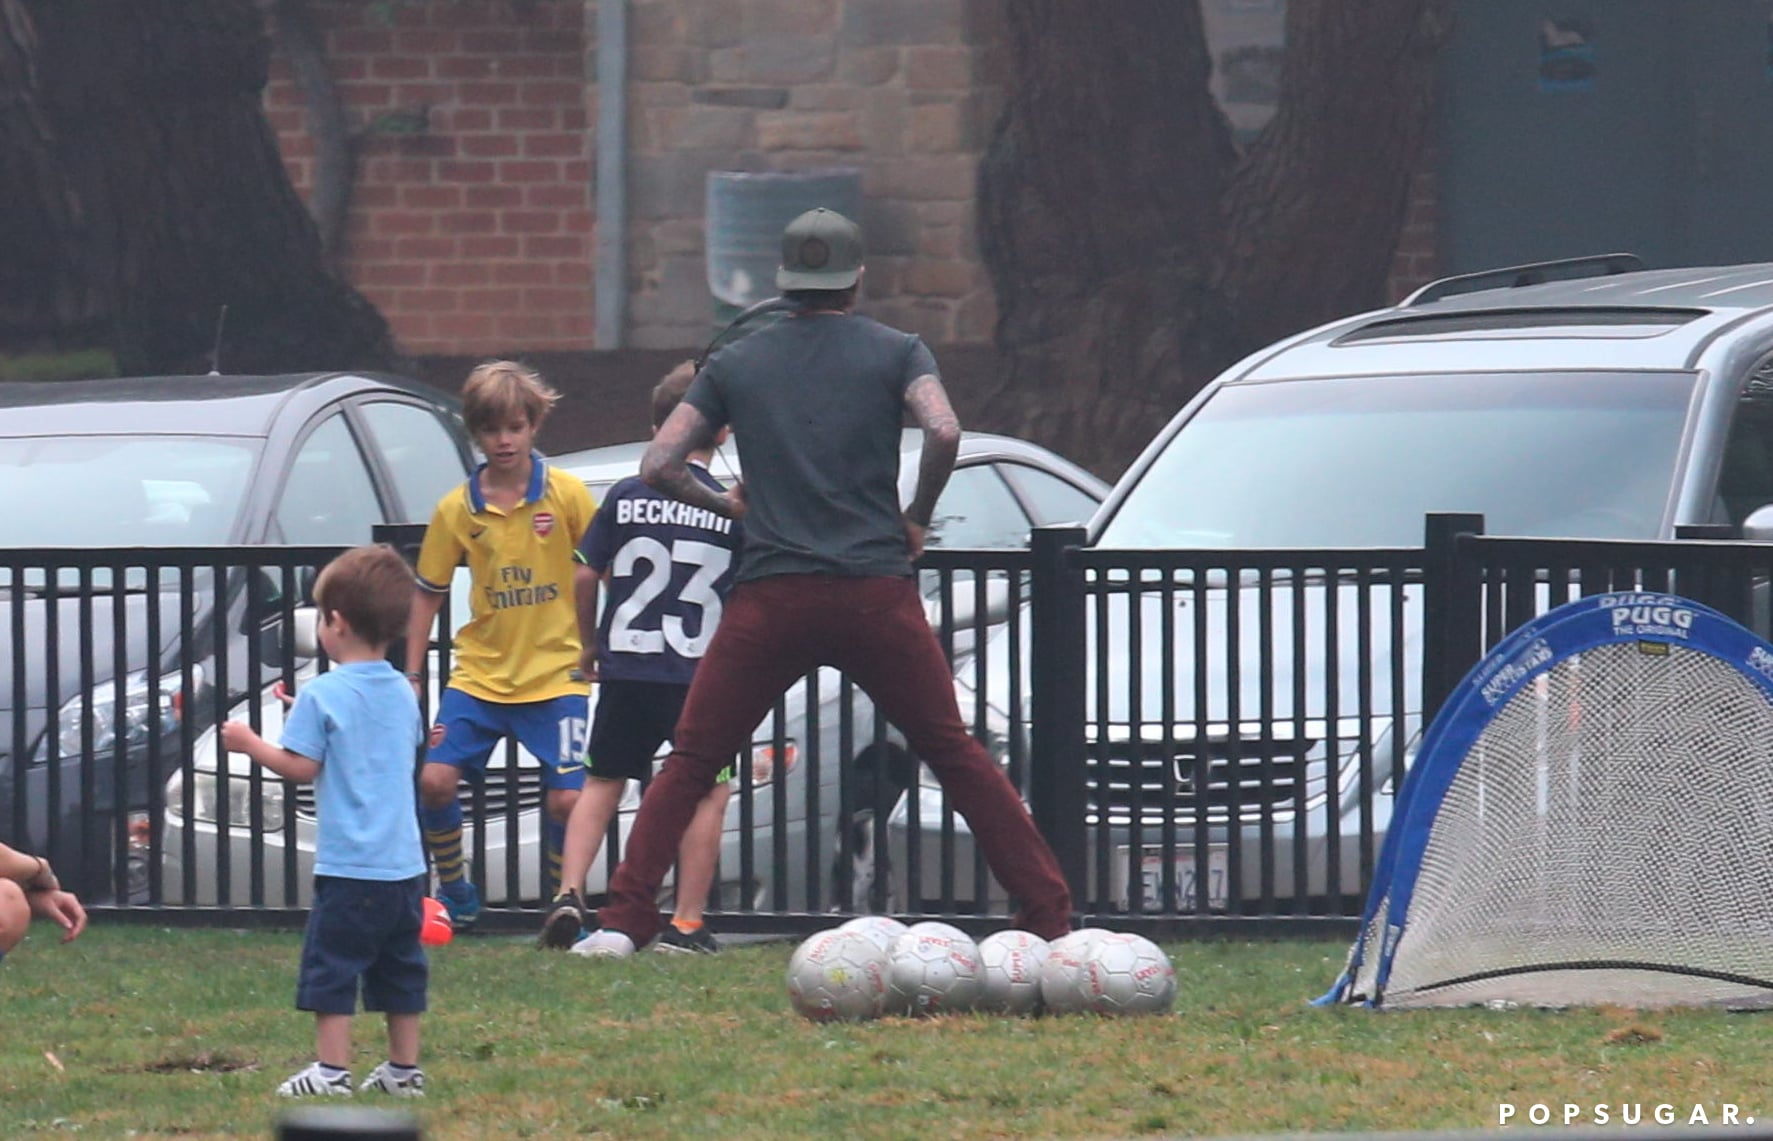 The Beckham boys played soccer together in LA.